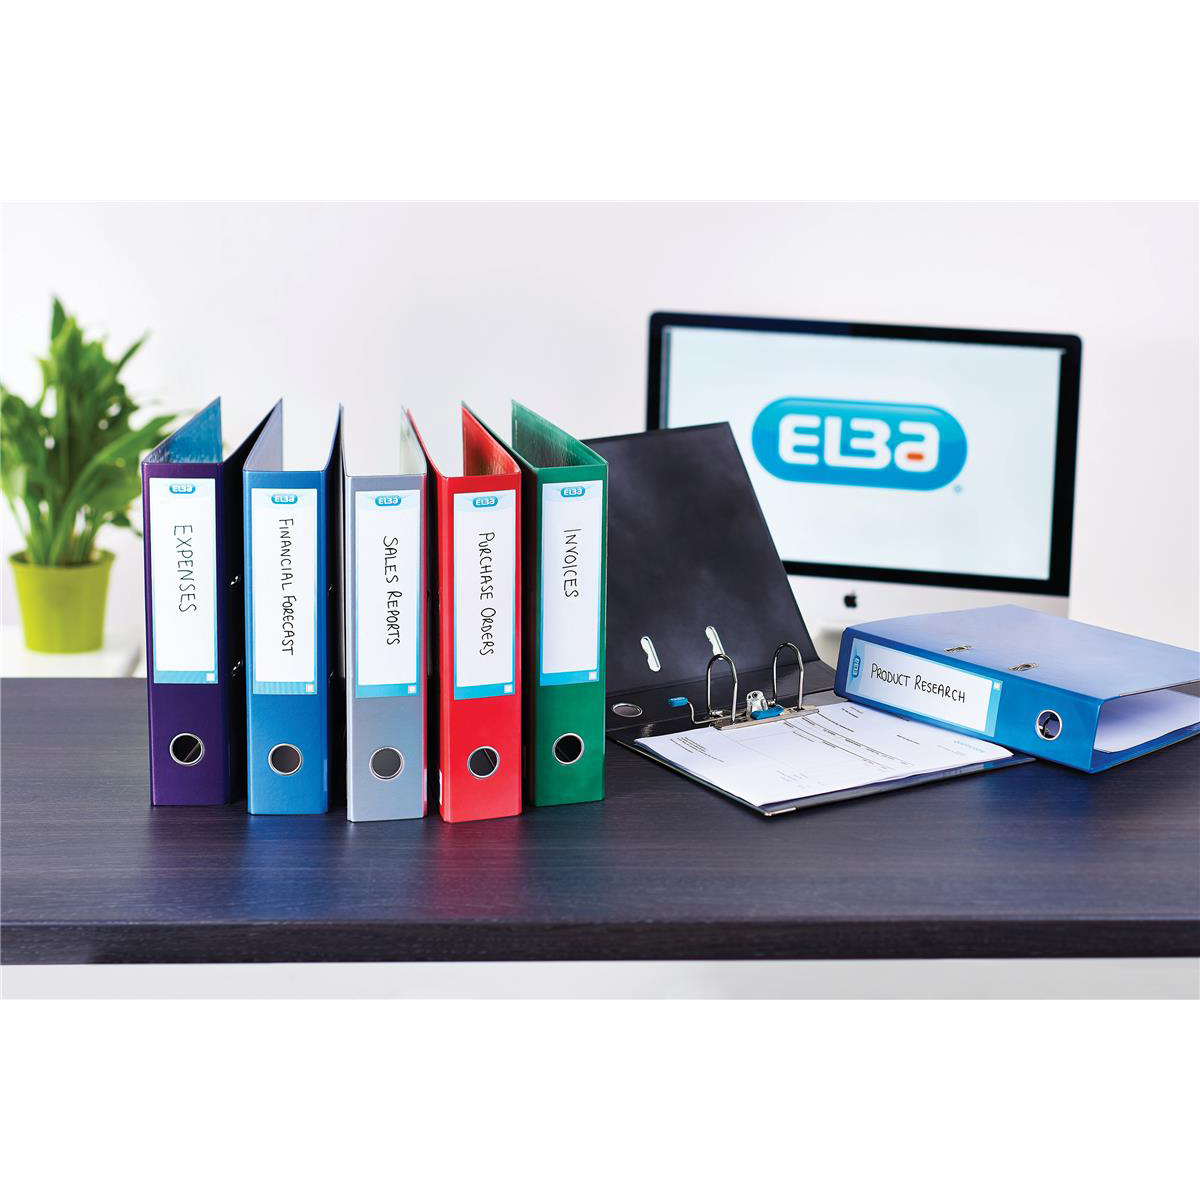 Elba Lever Arch File Laminated Gloss Finish 70mm Capacity A4+ Red Ref 400021004 [5 For 4] Jan-Dec 2018